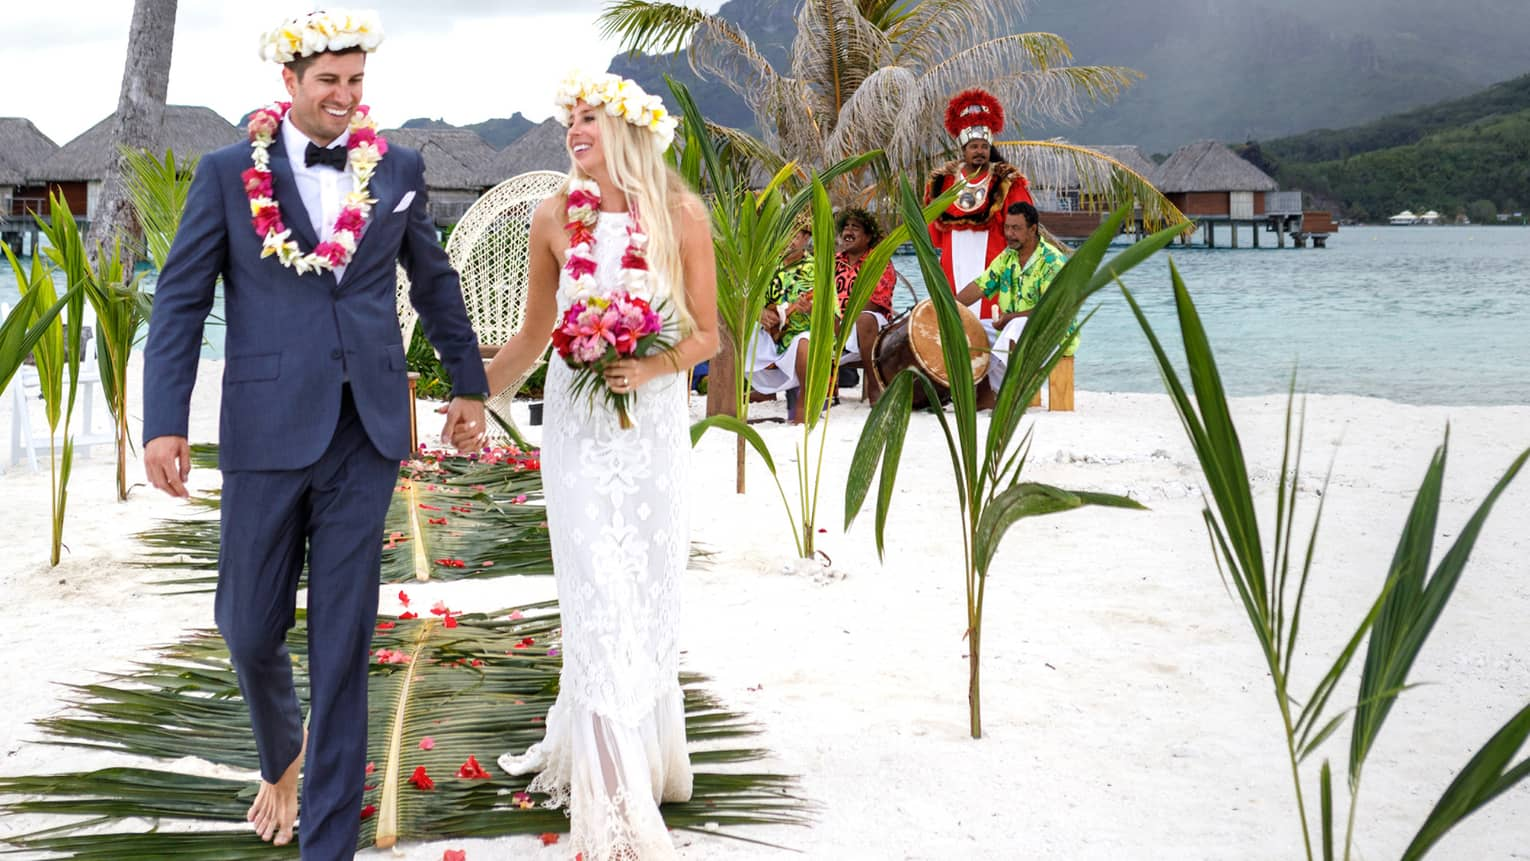 Bride and groom wearing floral crowns walk down aisle on white sand beach with palms